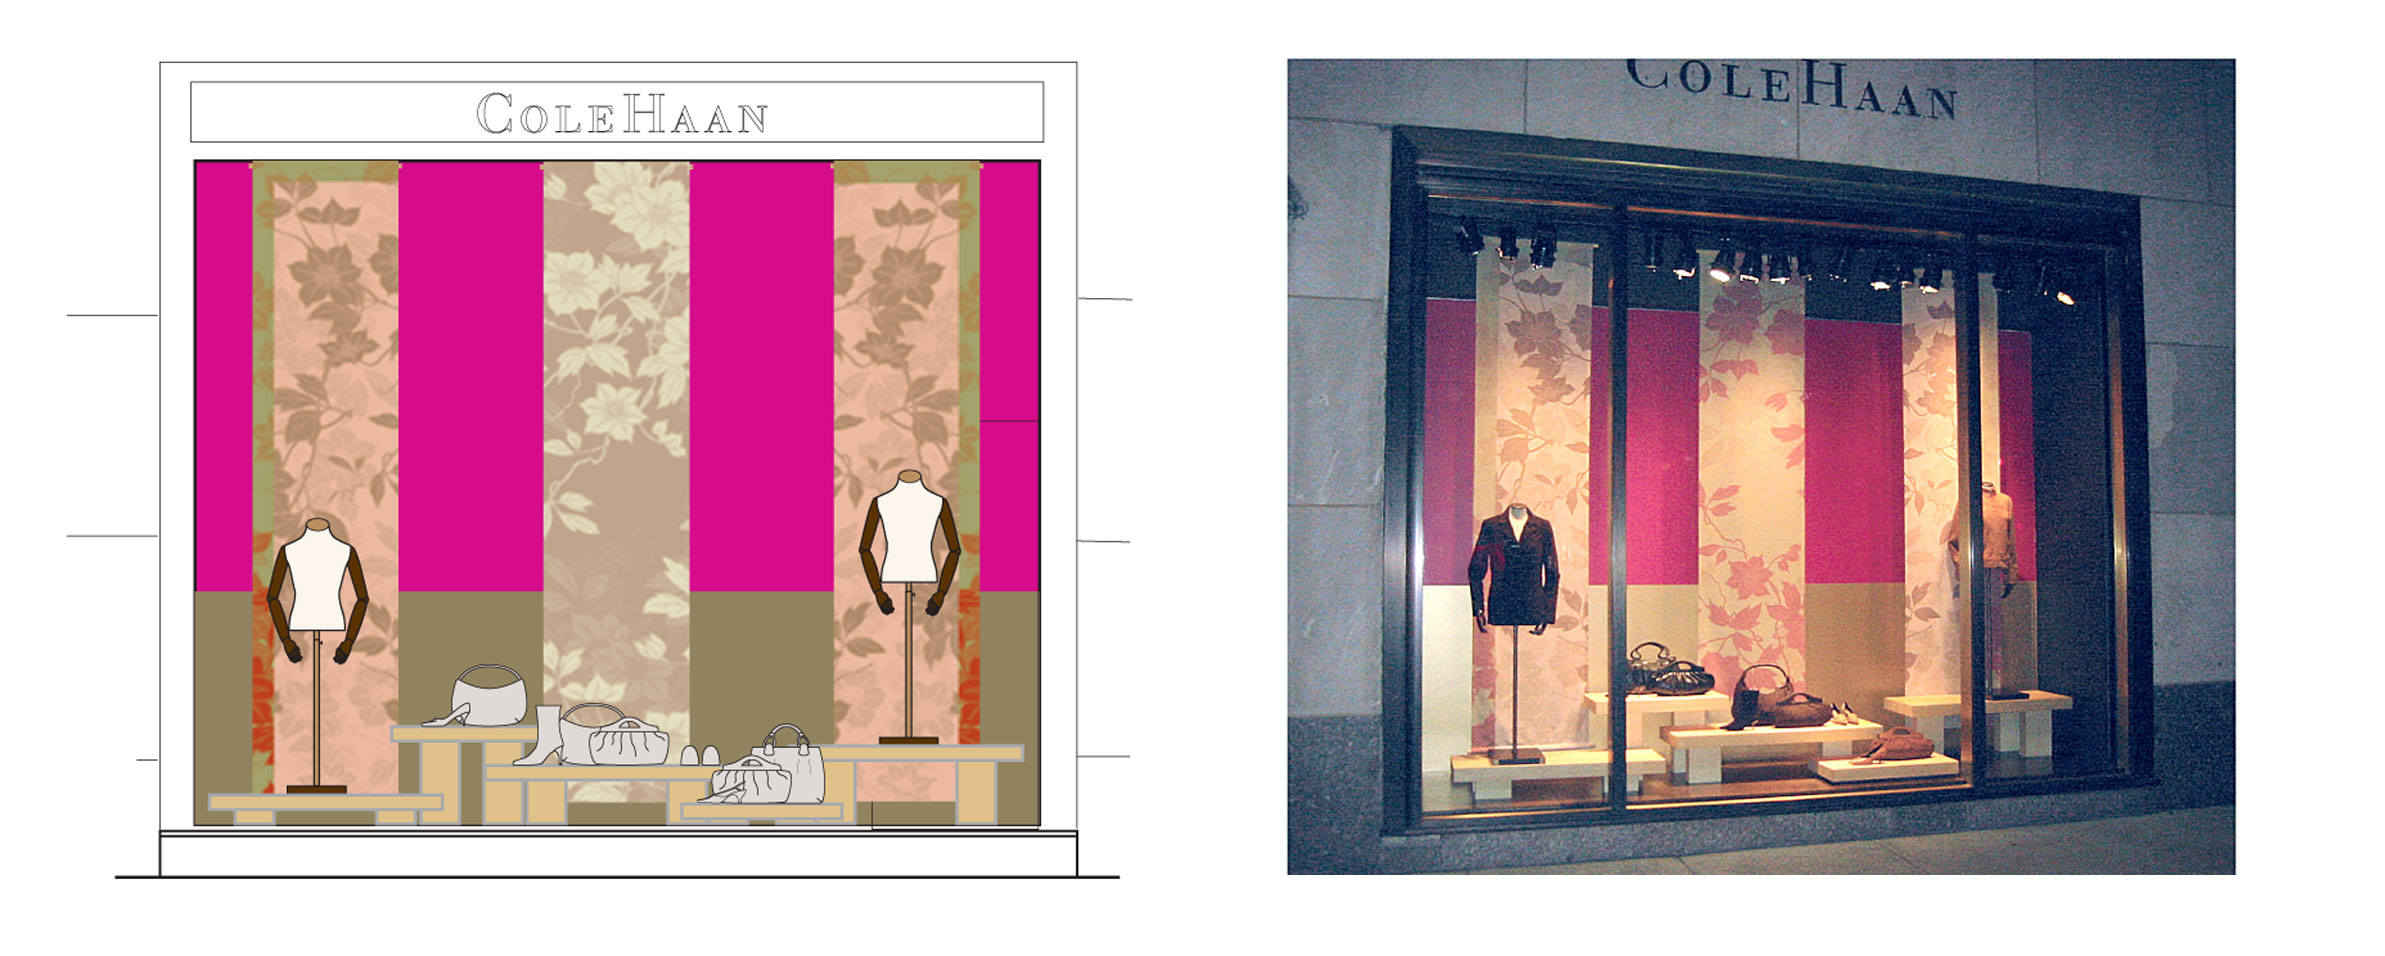 Designed Cole Haan window display. Speced out work with contractor to build display tables and fabric wall hangings.